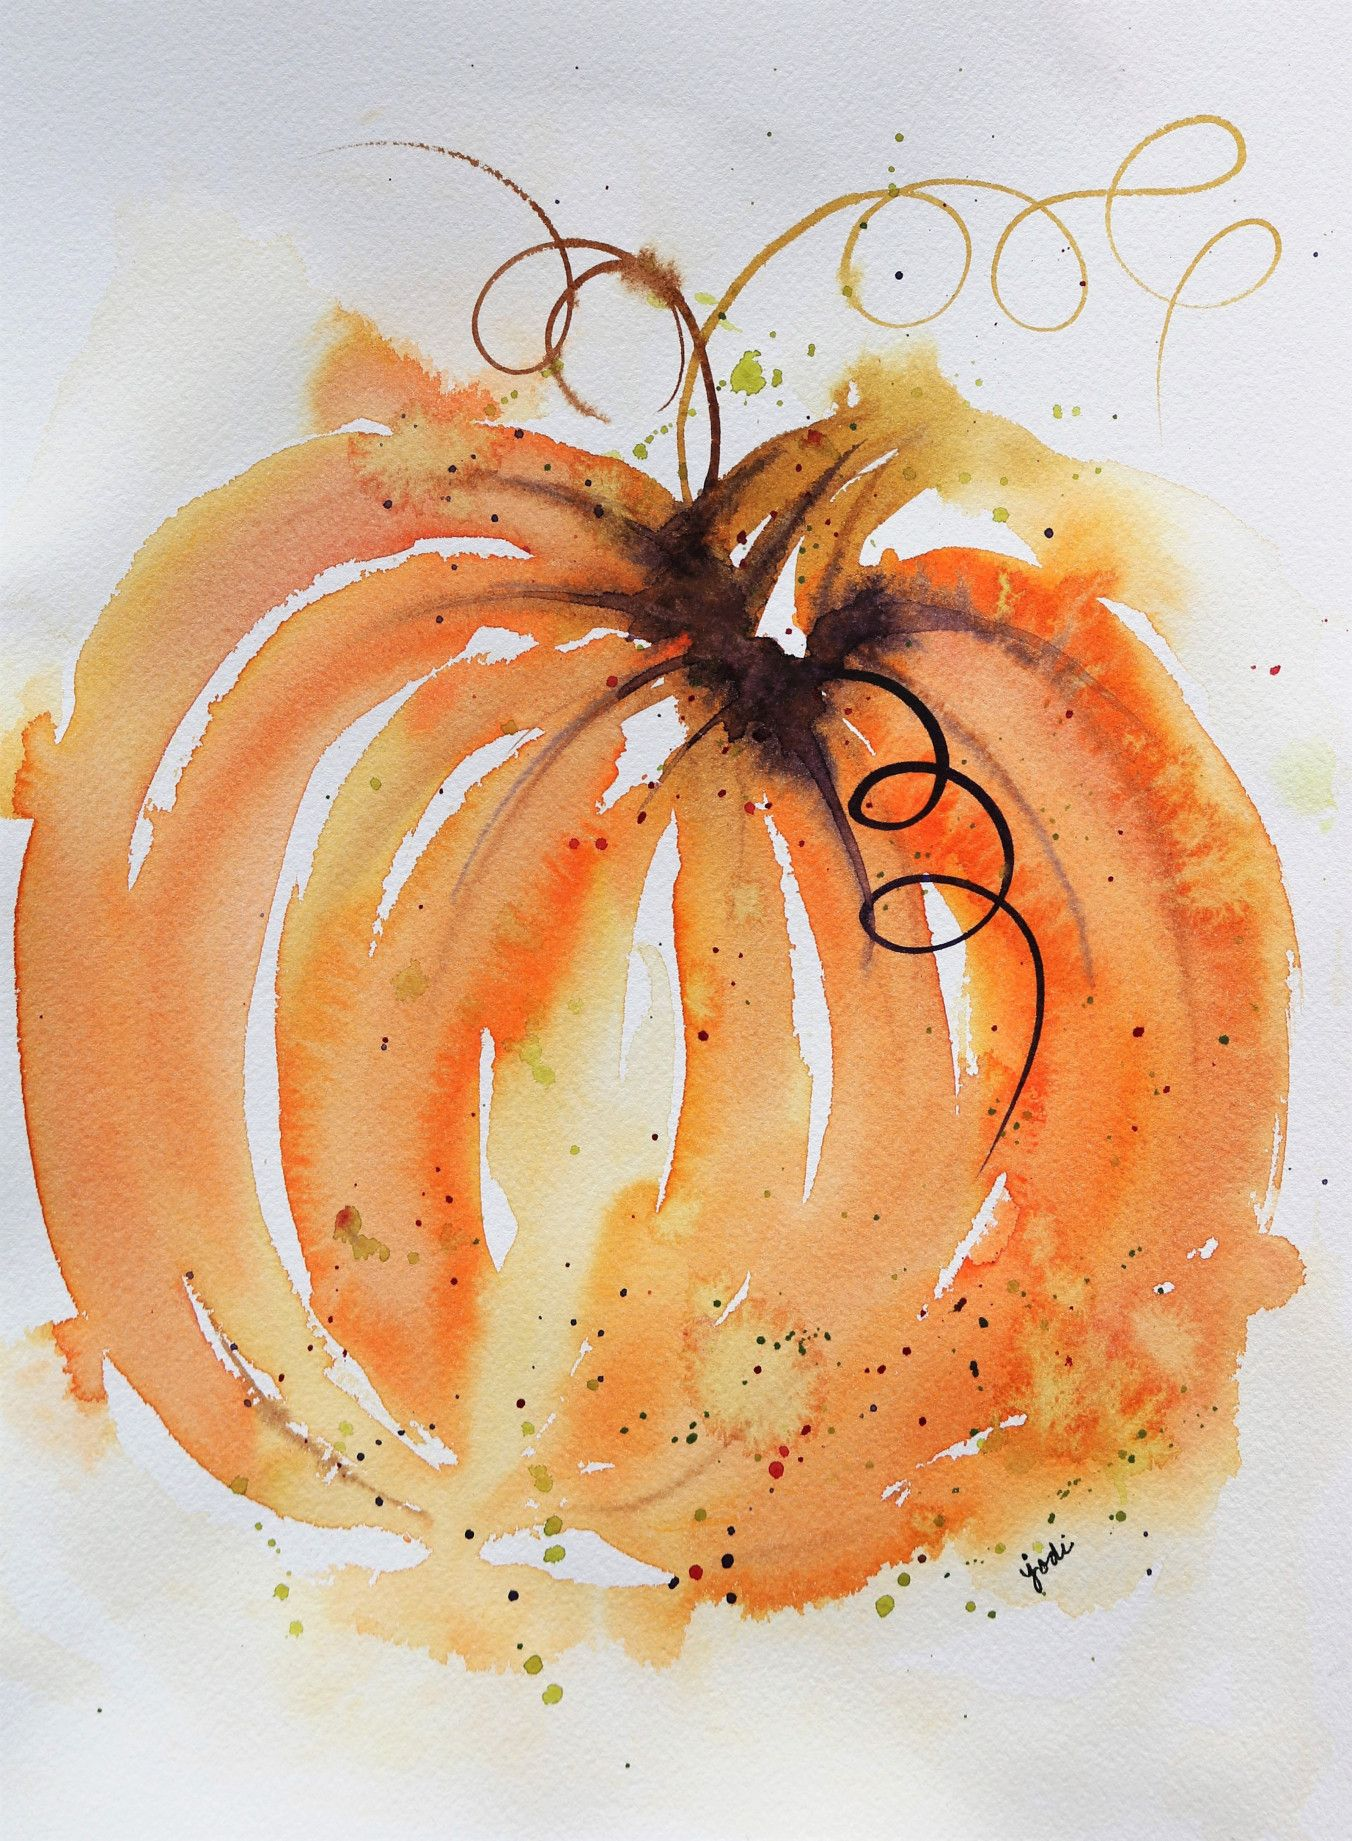 Creative Inspiration In Food Watercolor Photography Writing And